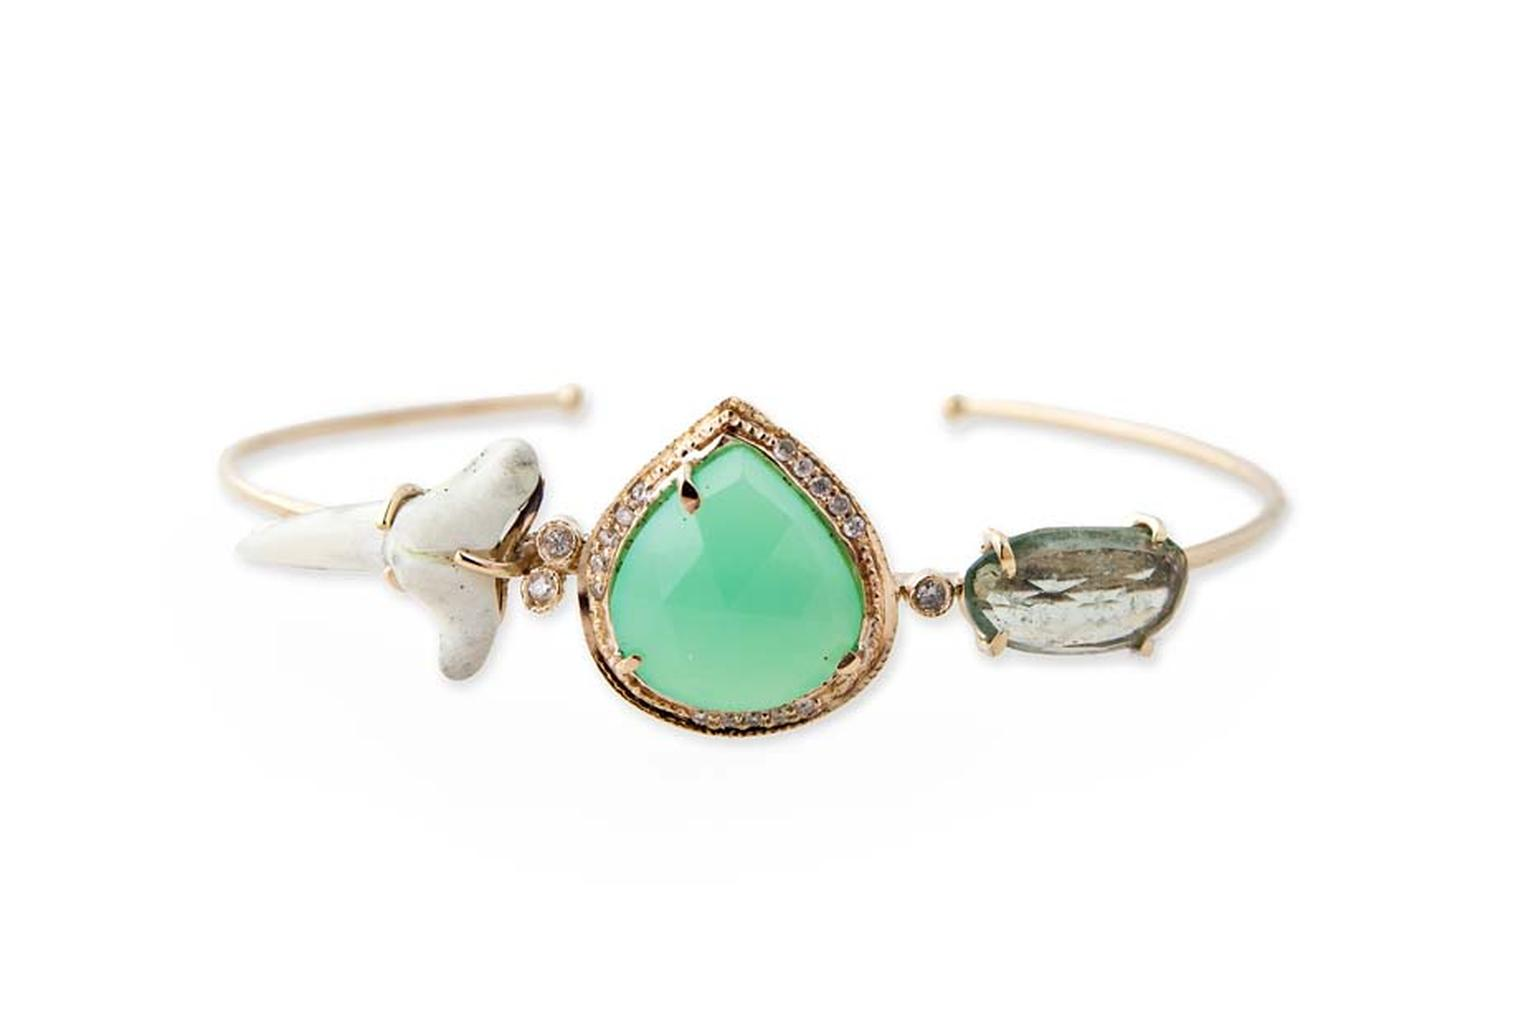 Jacquie Aiche bracelet with pavé diamonds, chrysoprase and natural shark tooth.